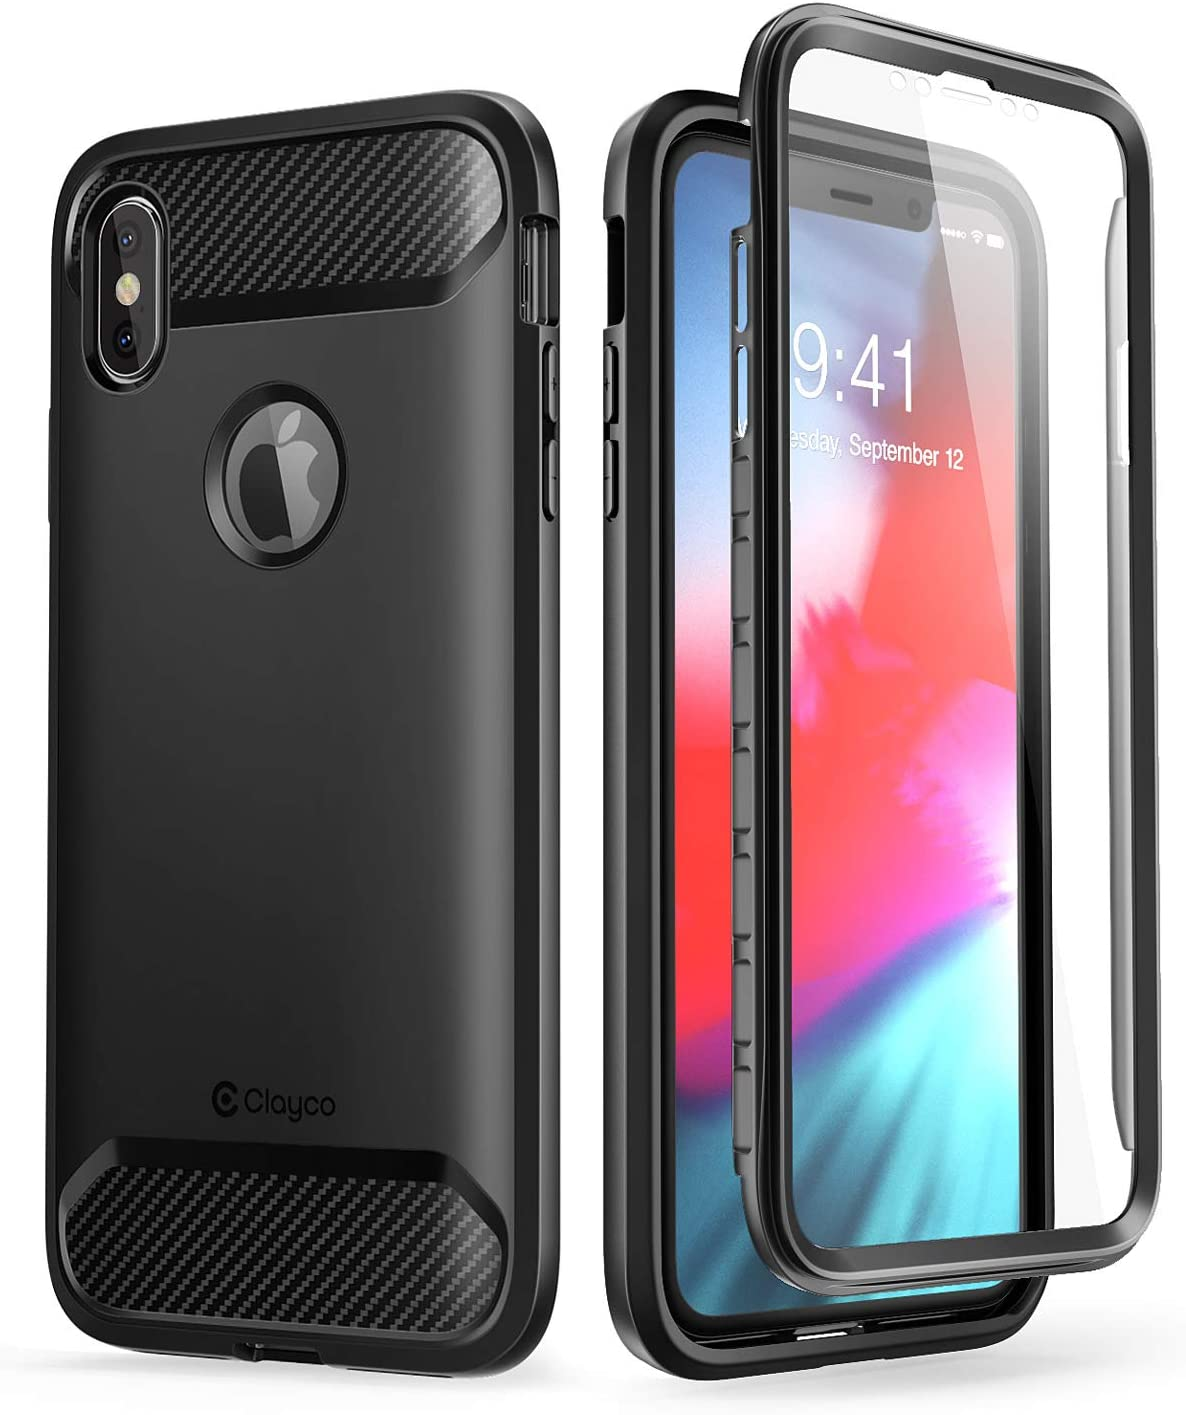 Amazon Com Iphone Xs Max Case Clayco Xenon Series Full Body Rugged Case With Built In Screen Protector For Apple Iphone Xs Max 6 5 Inch 2018 Black